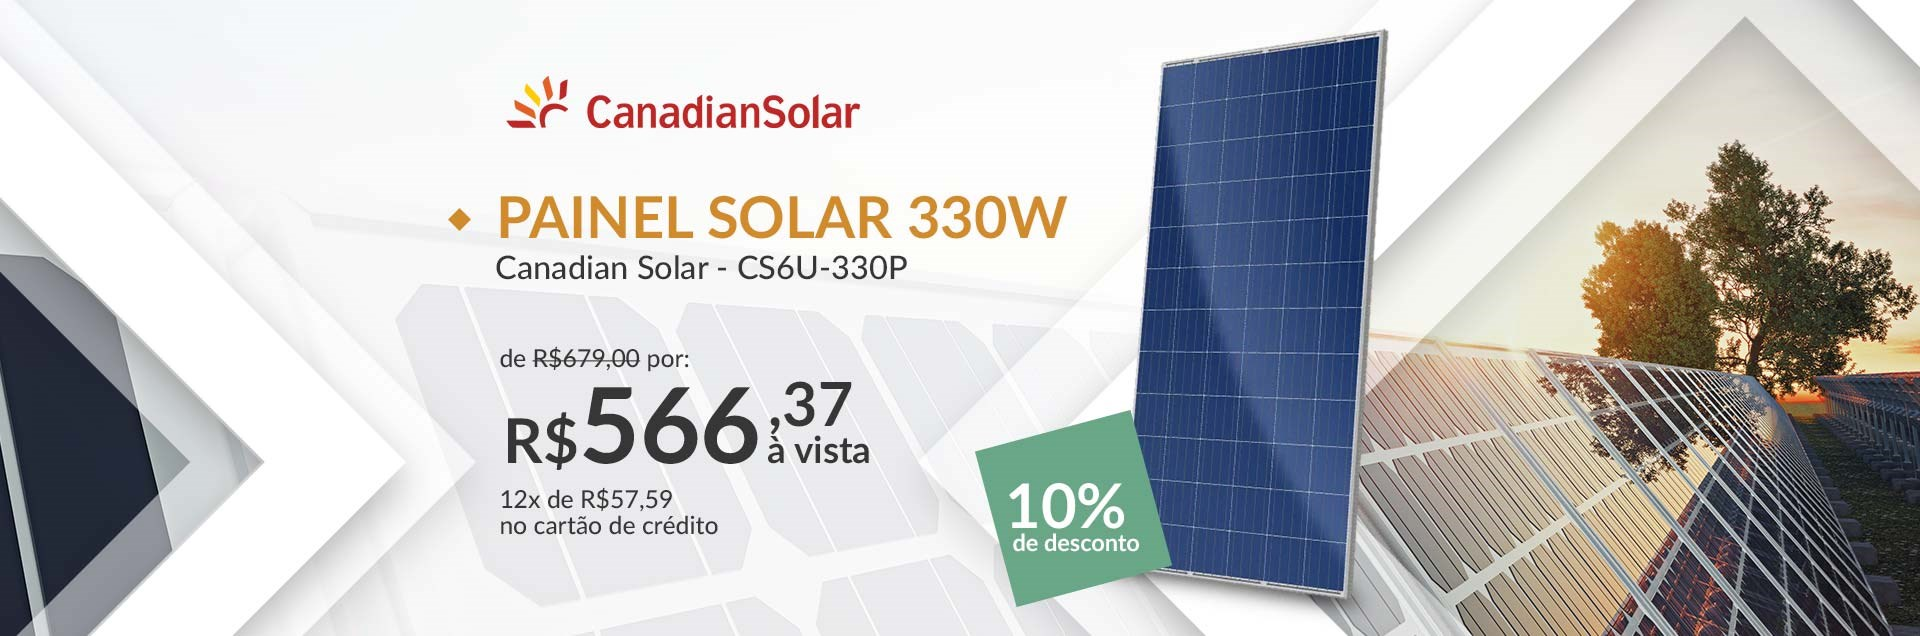 Banner Painel Solar 330W Canadian Solar